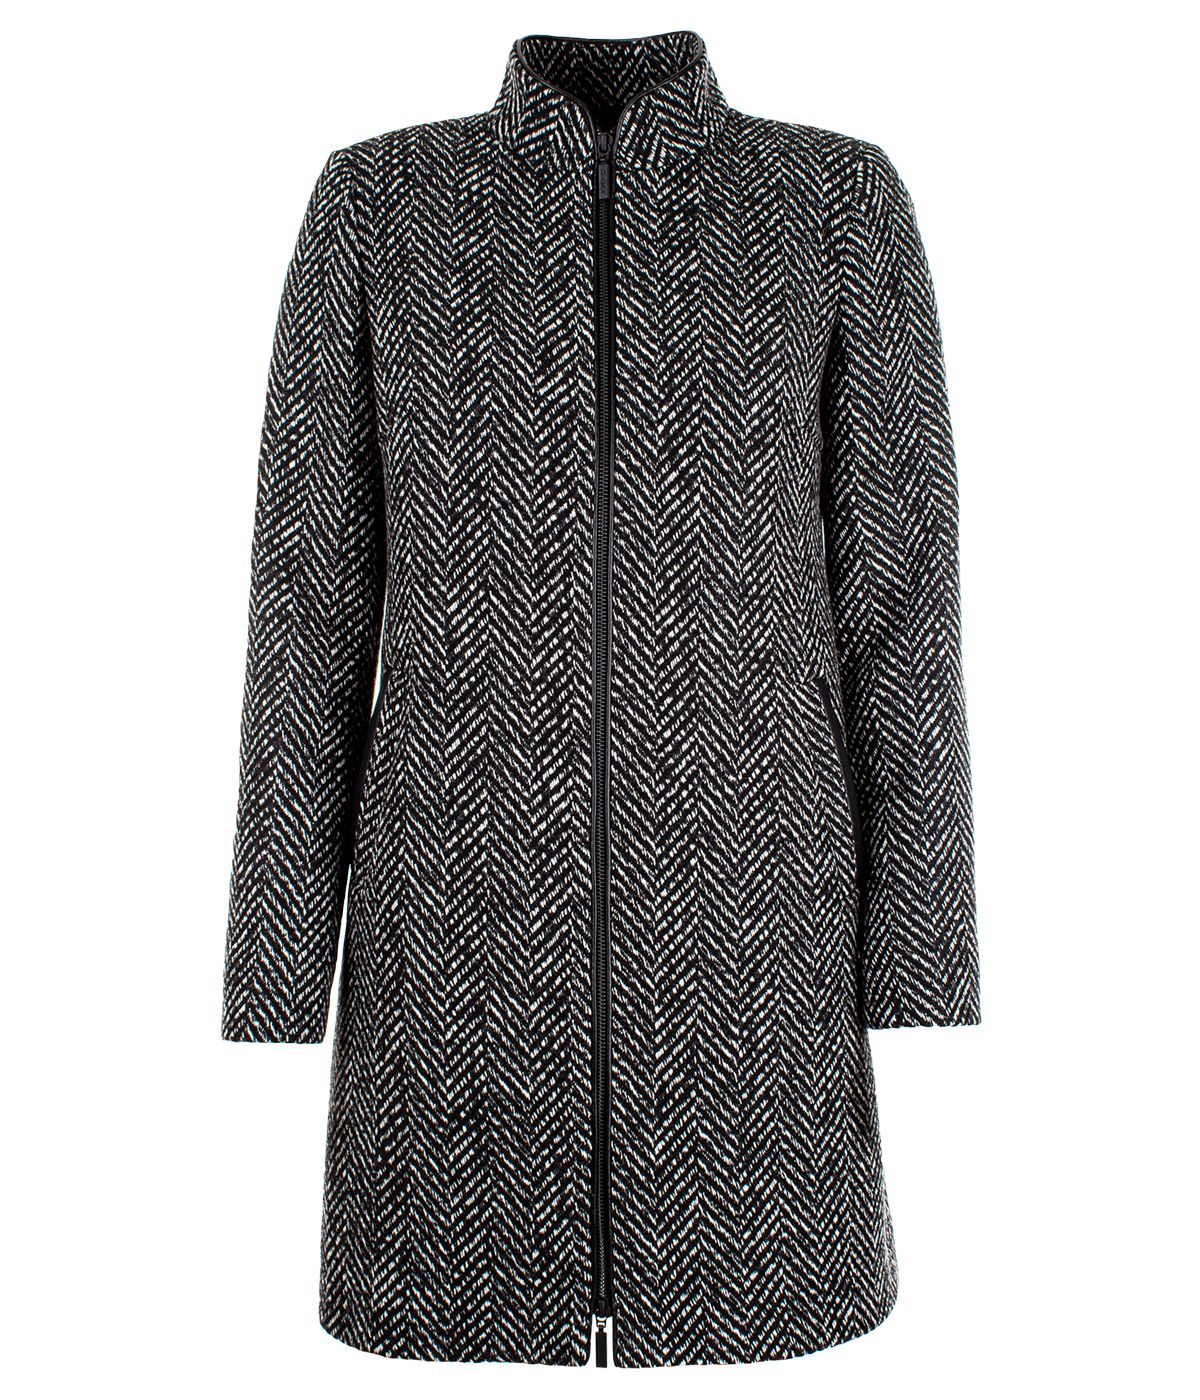 Wool coat herringbone, zip fastening 0